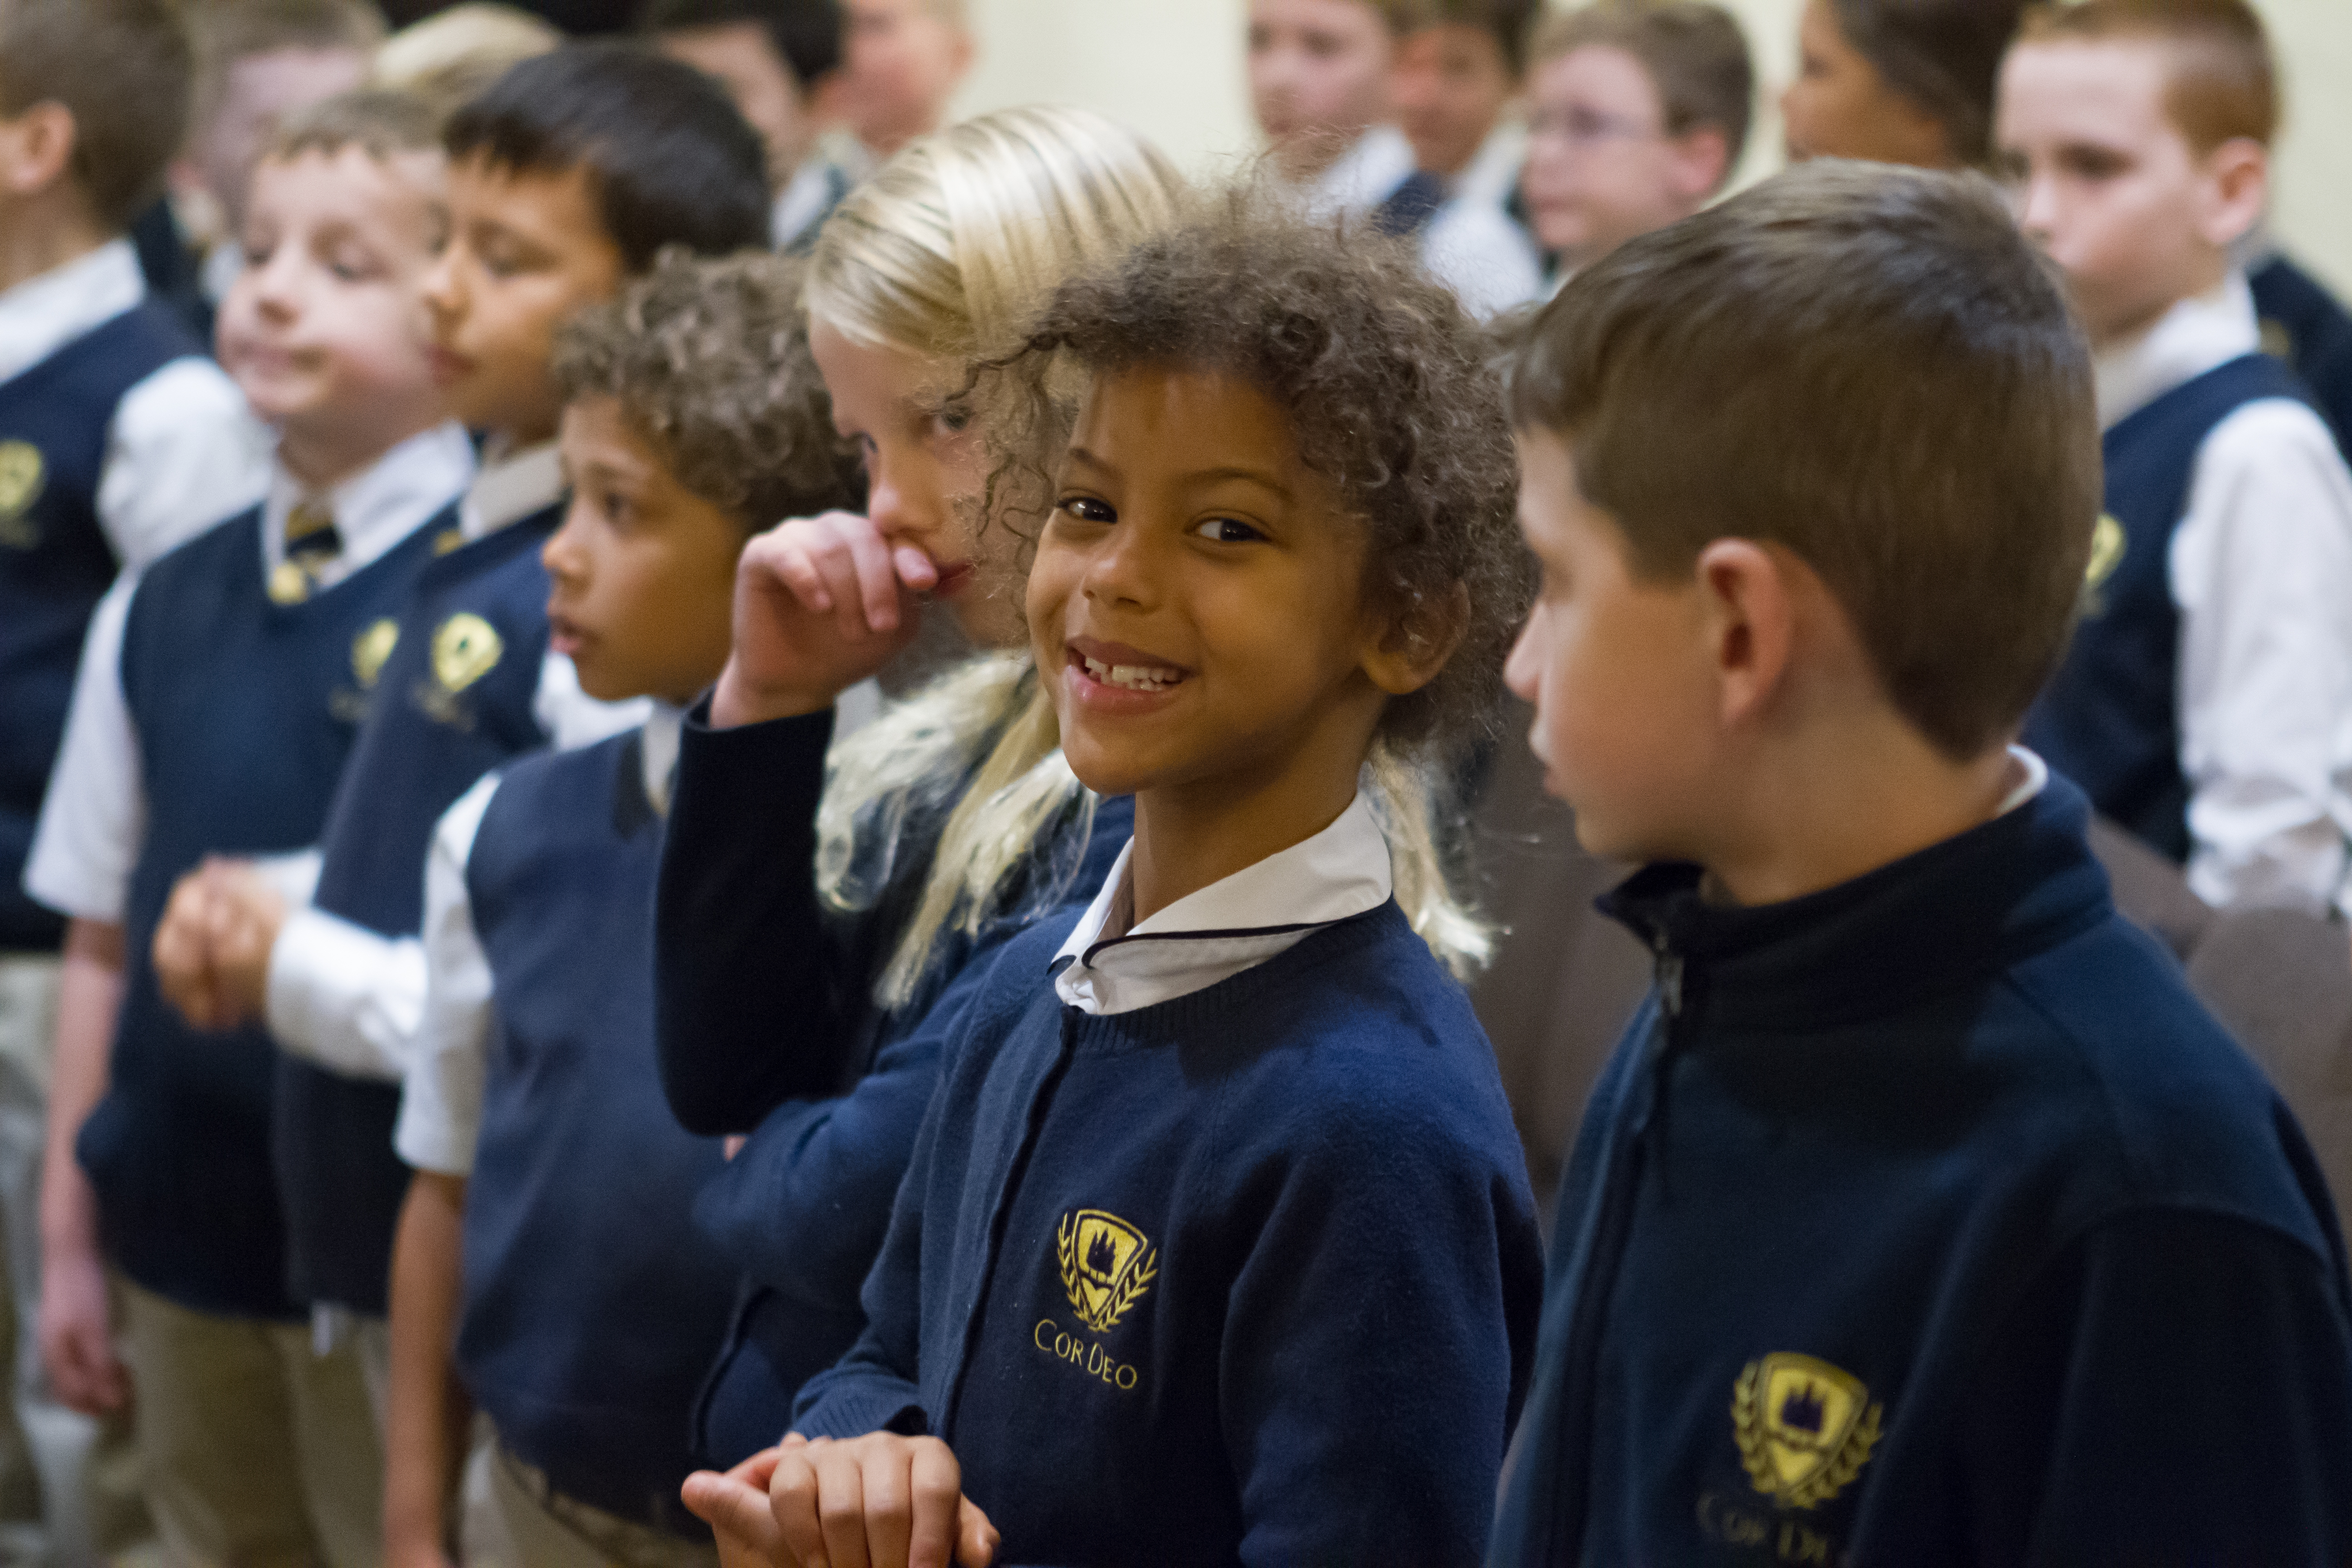 The Cor Deo School is setting the foundation for our children to fall in love with learning and learning to recognize God in everything around them.